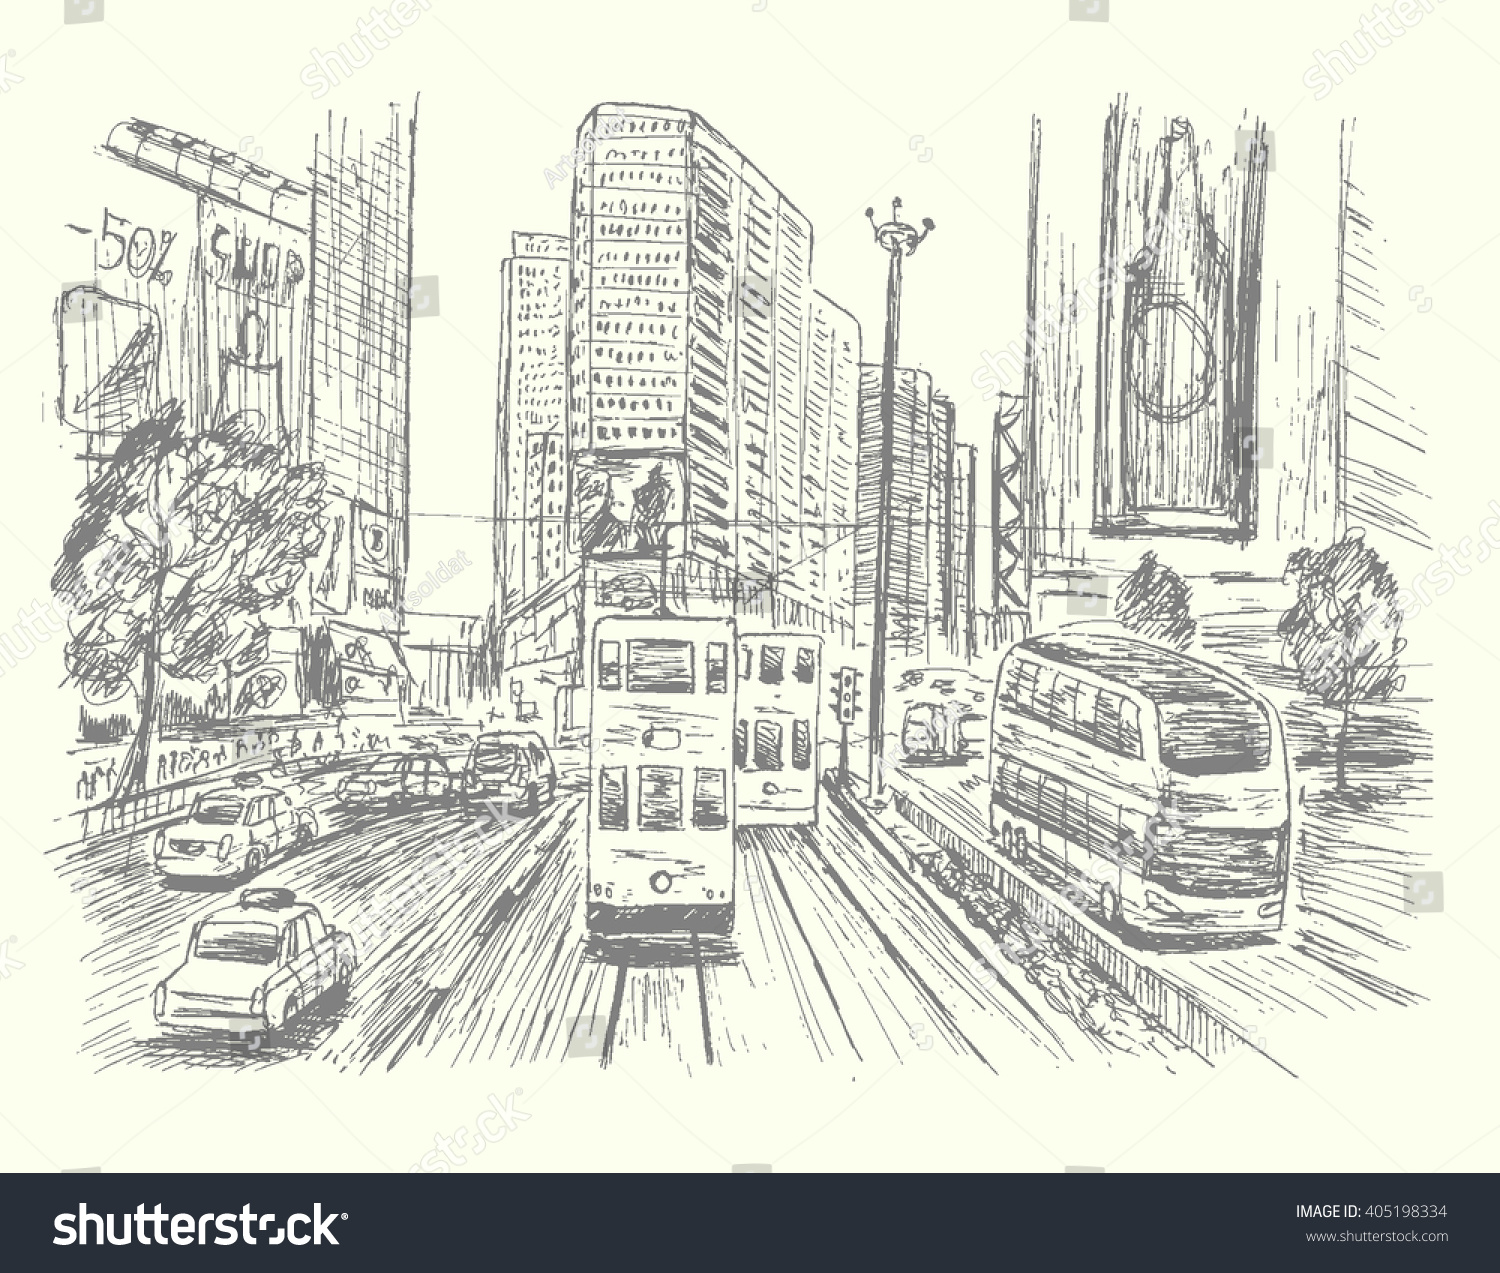 Hong Kong City Scene With Busy Street,Hand Drawn,Sketch